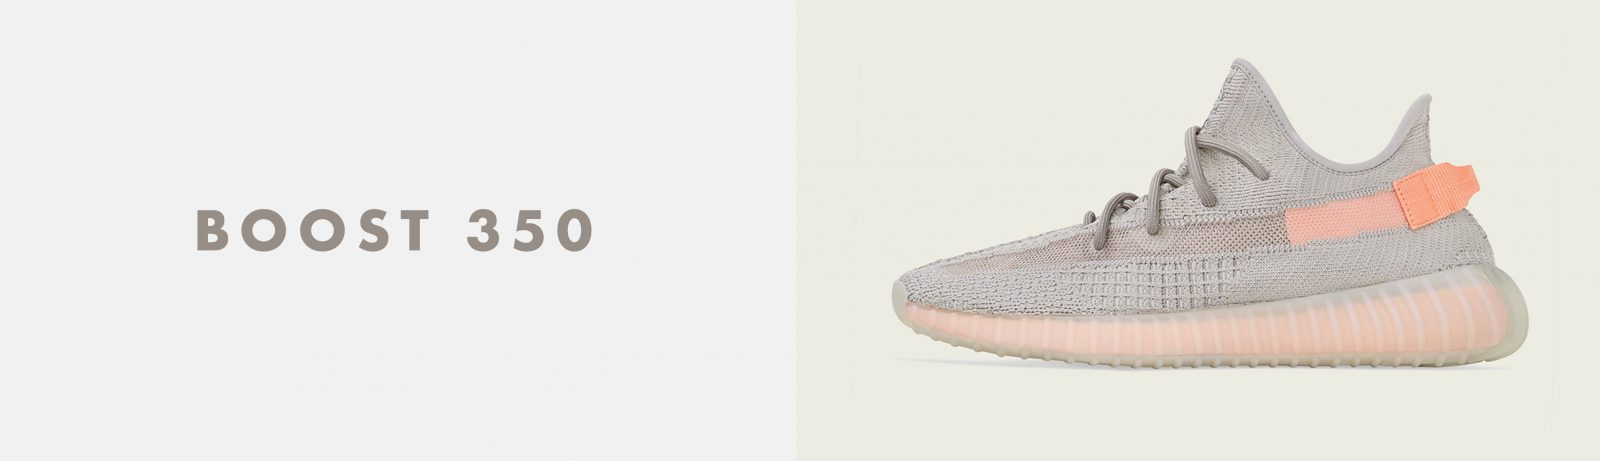 on sale 874c4 936f8 Women's Yeezy Boost 350 | Where To Buy | The Sole Womens